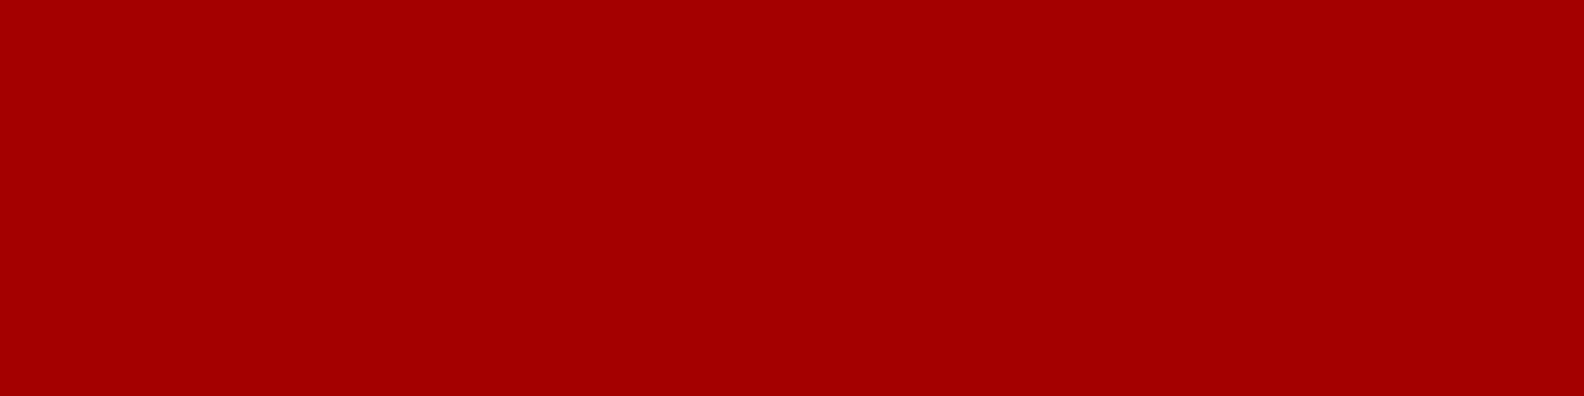 1584x396 Dark Candy Apple Red Solid Color Background